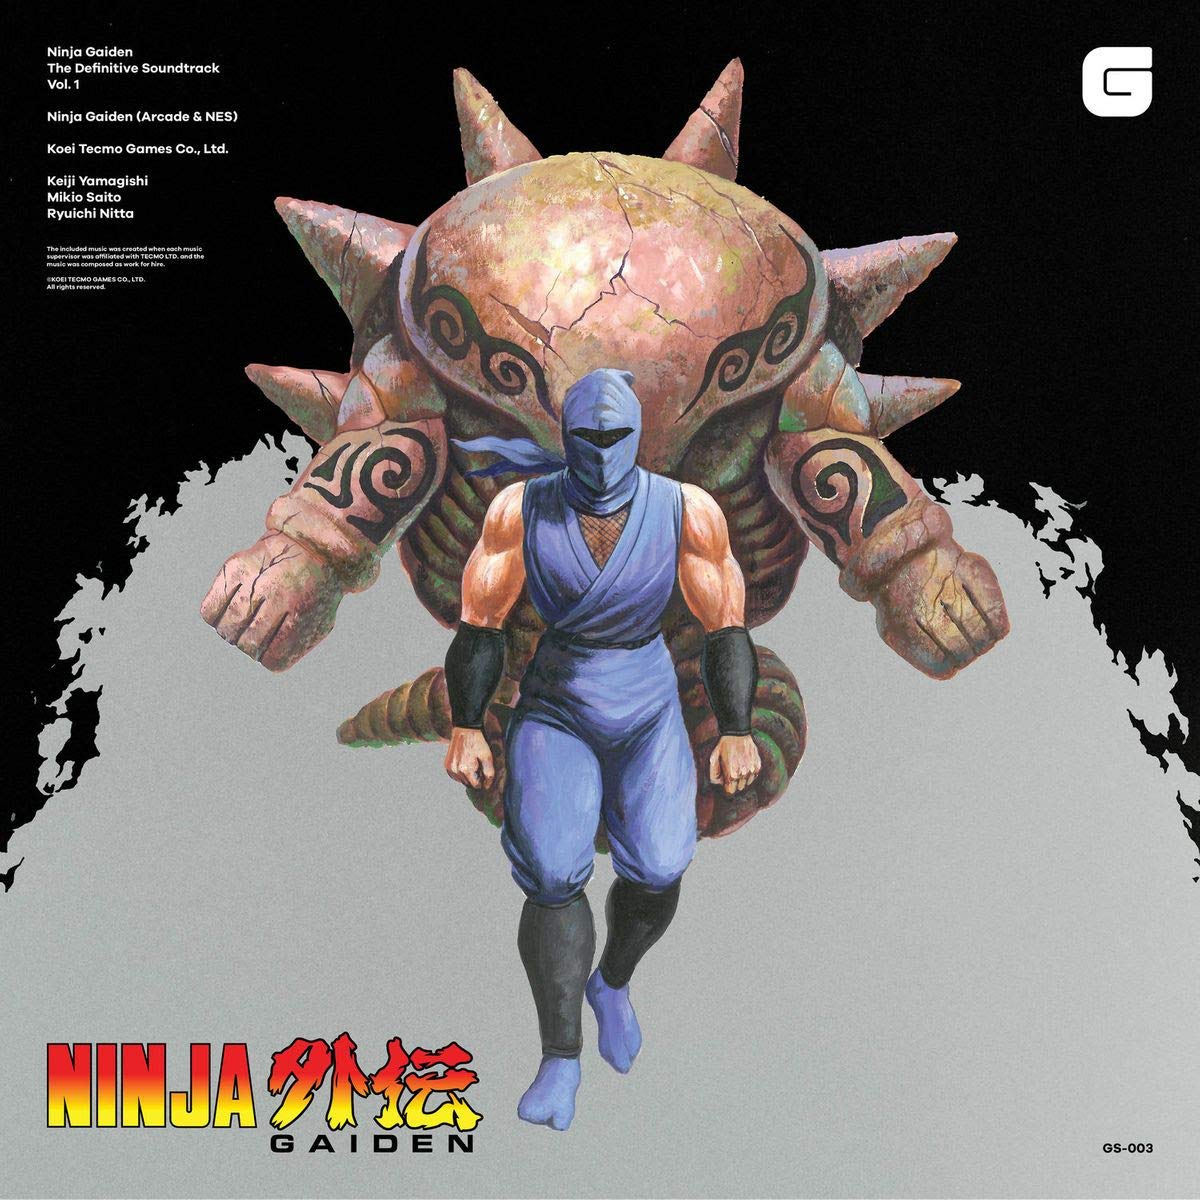 Ninja Gaiden - The Definitive Soundtrack - Vol. 1 : Keiji ...